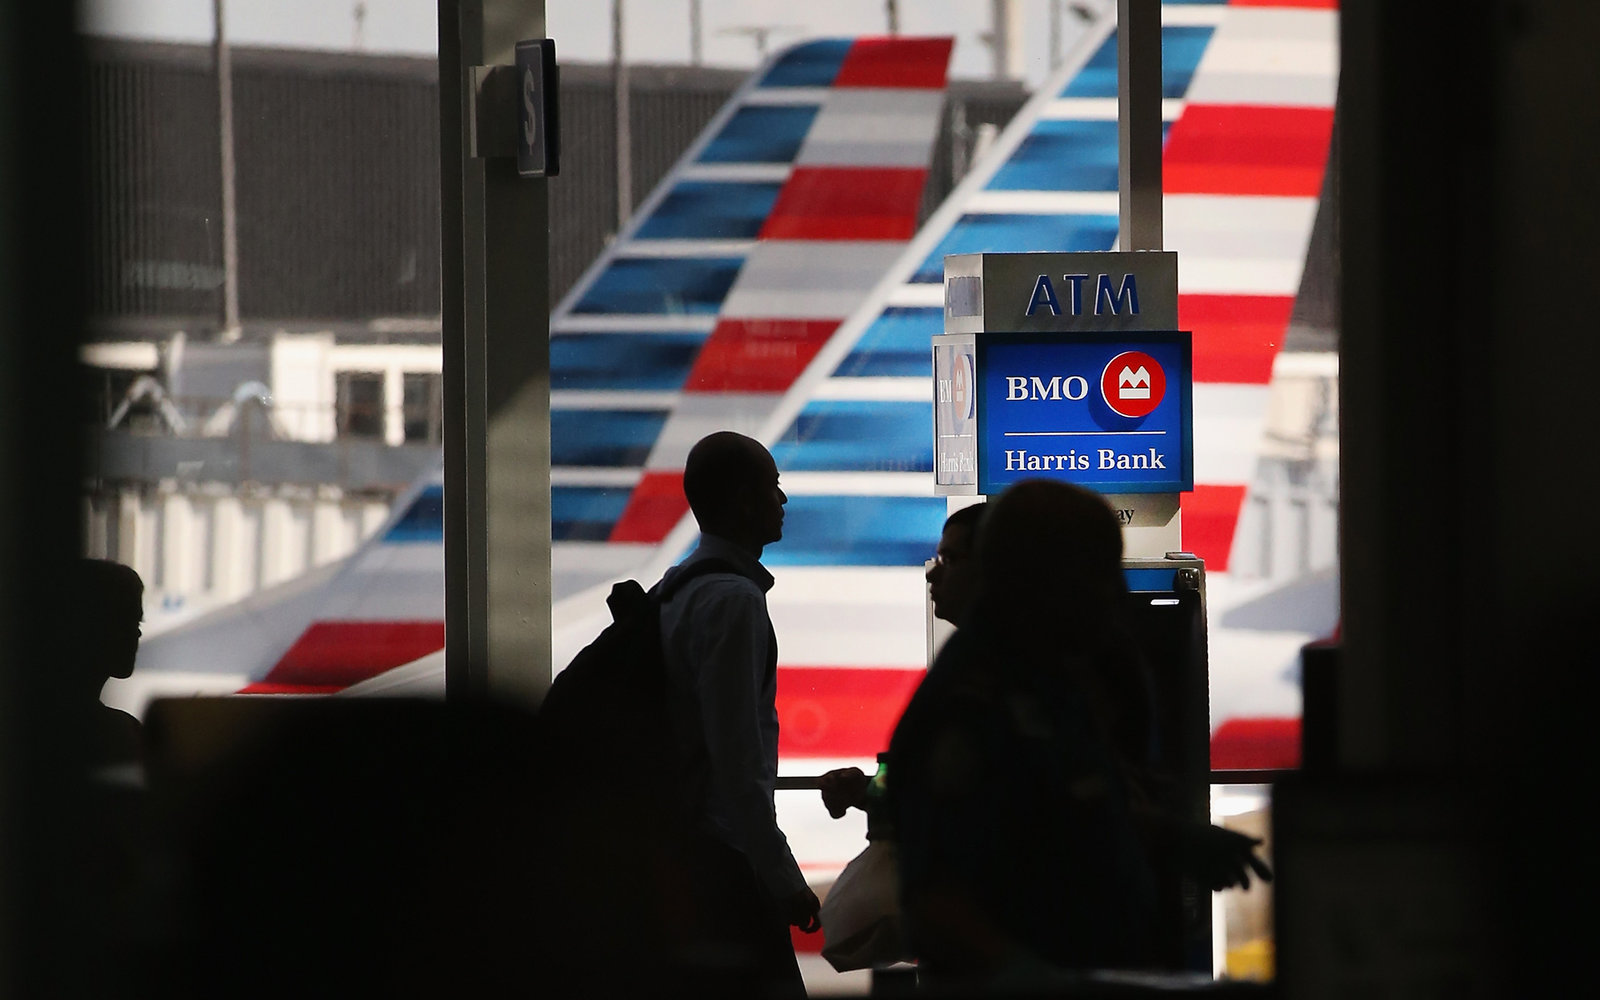 American Airlines Rewards Program Changes